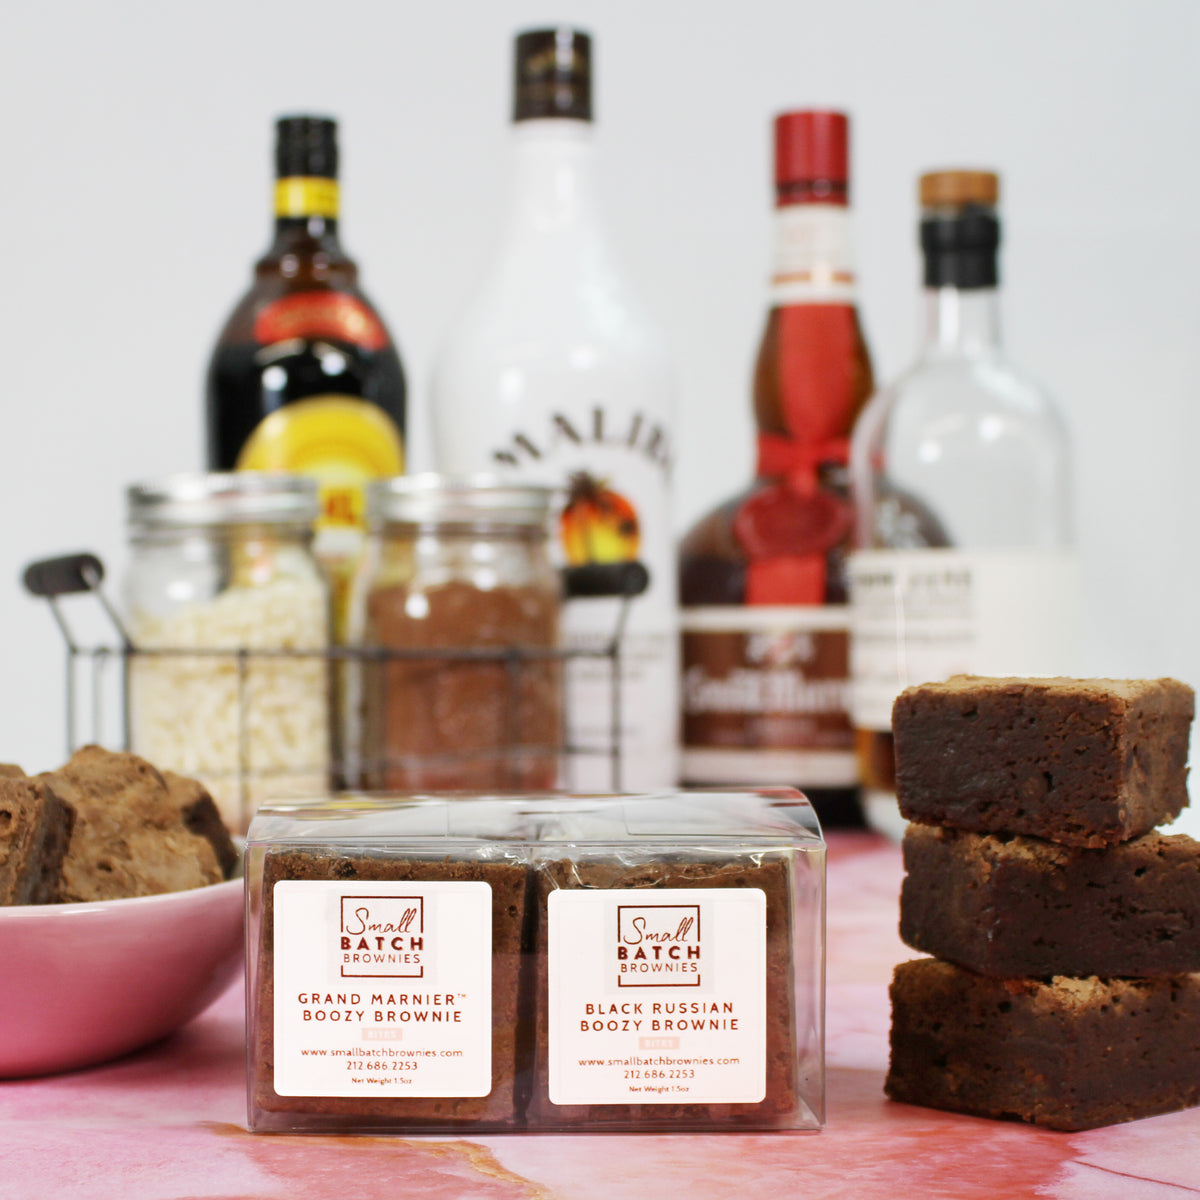 Grand Marnier™ Boozy Brownies-Small Batch Brownies